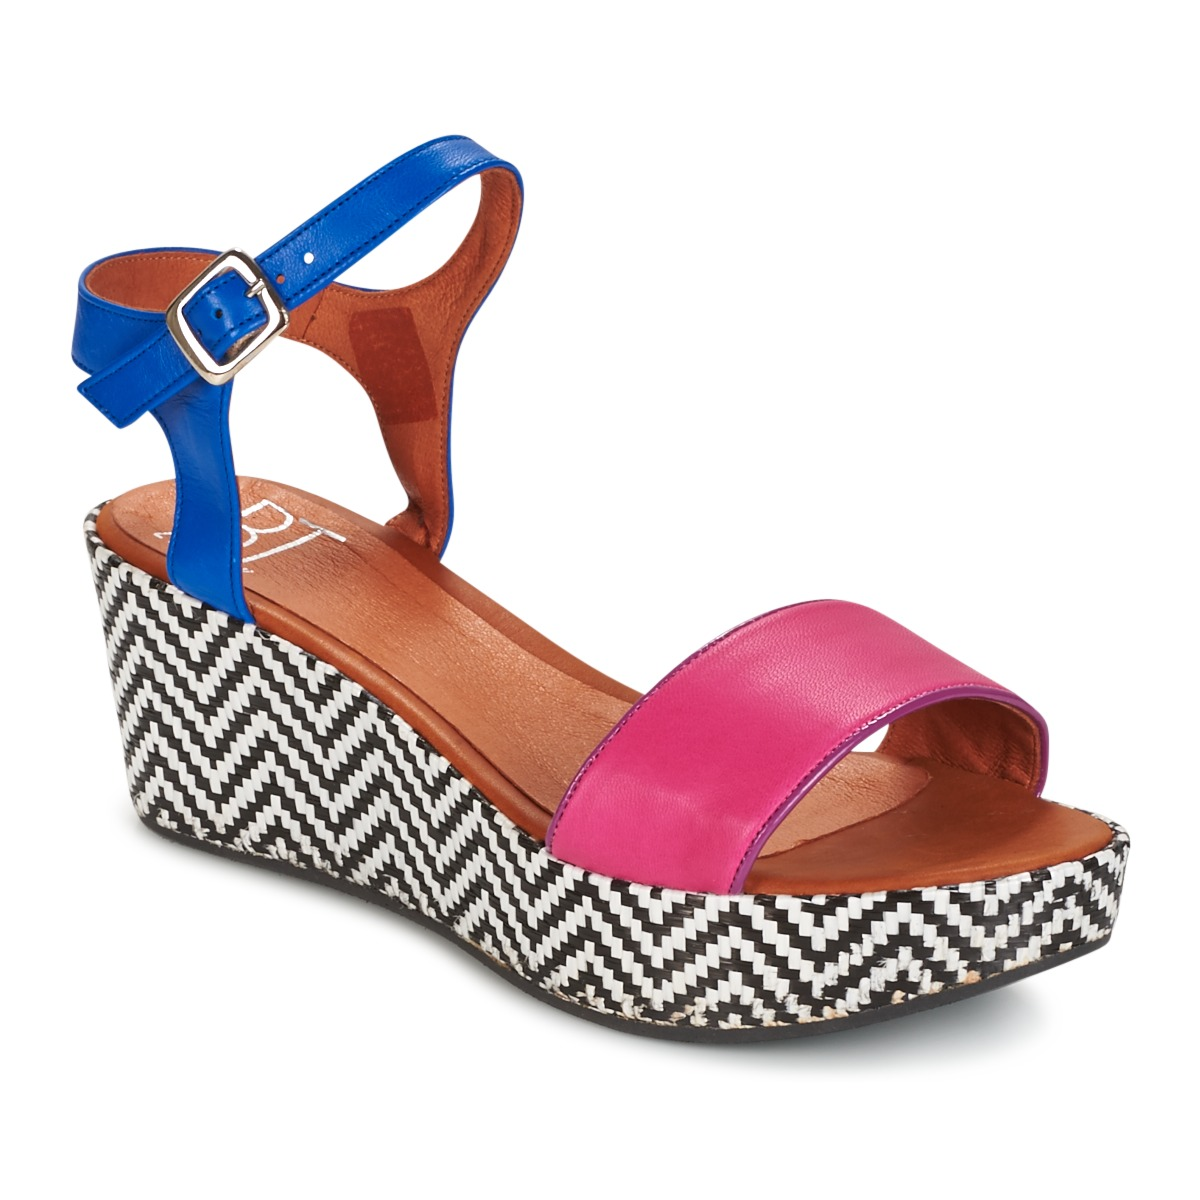 Sandale Betty London EDOUVOLE Fuchsia / Bleu